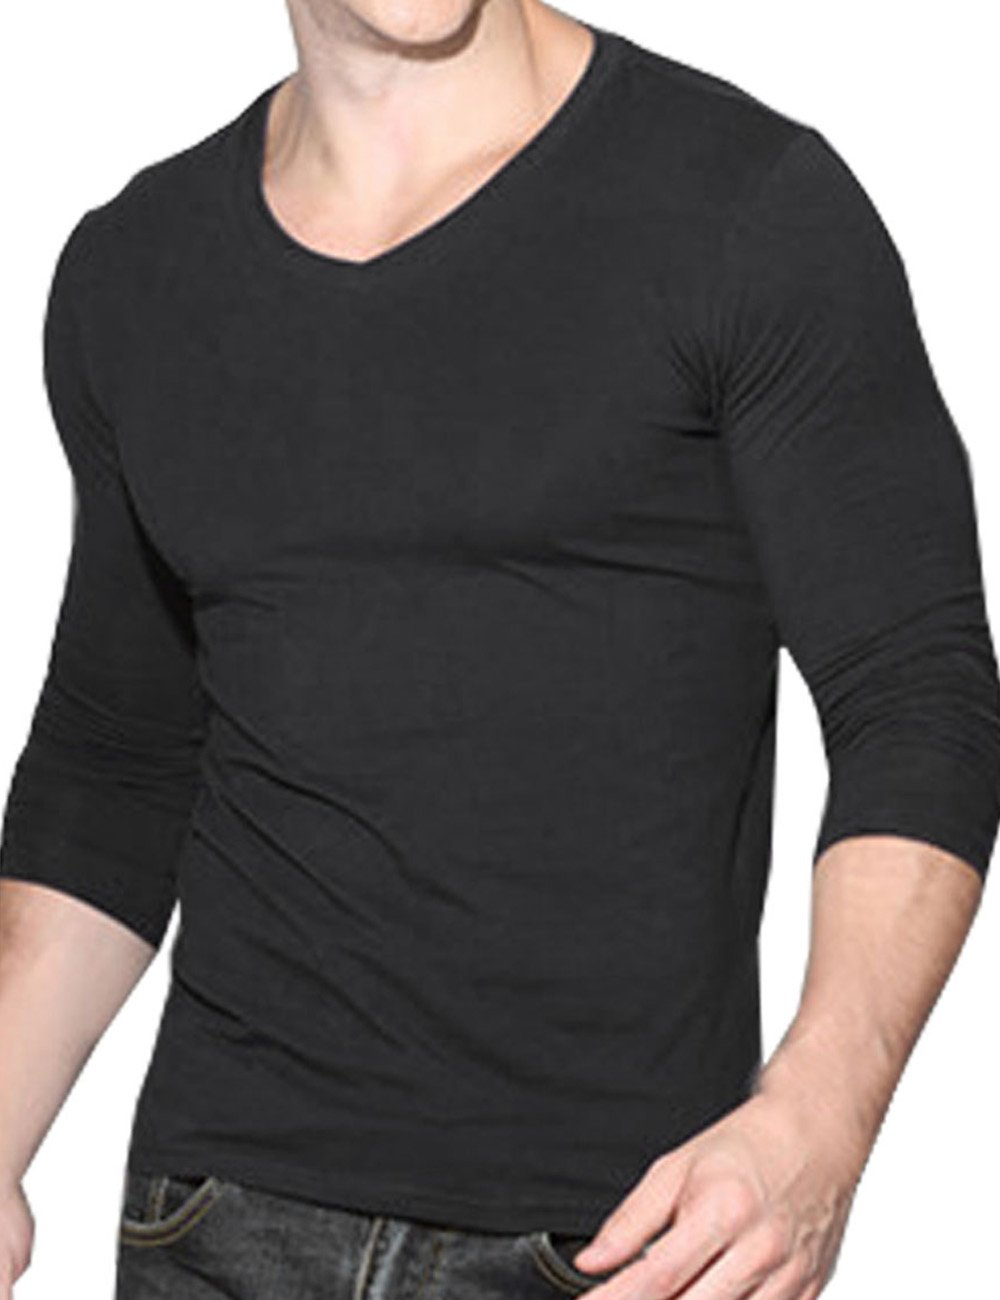 DDSOL Men's Cotton Long Sleeve Sports Training Compression Base Layer T-Shirt